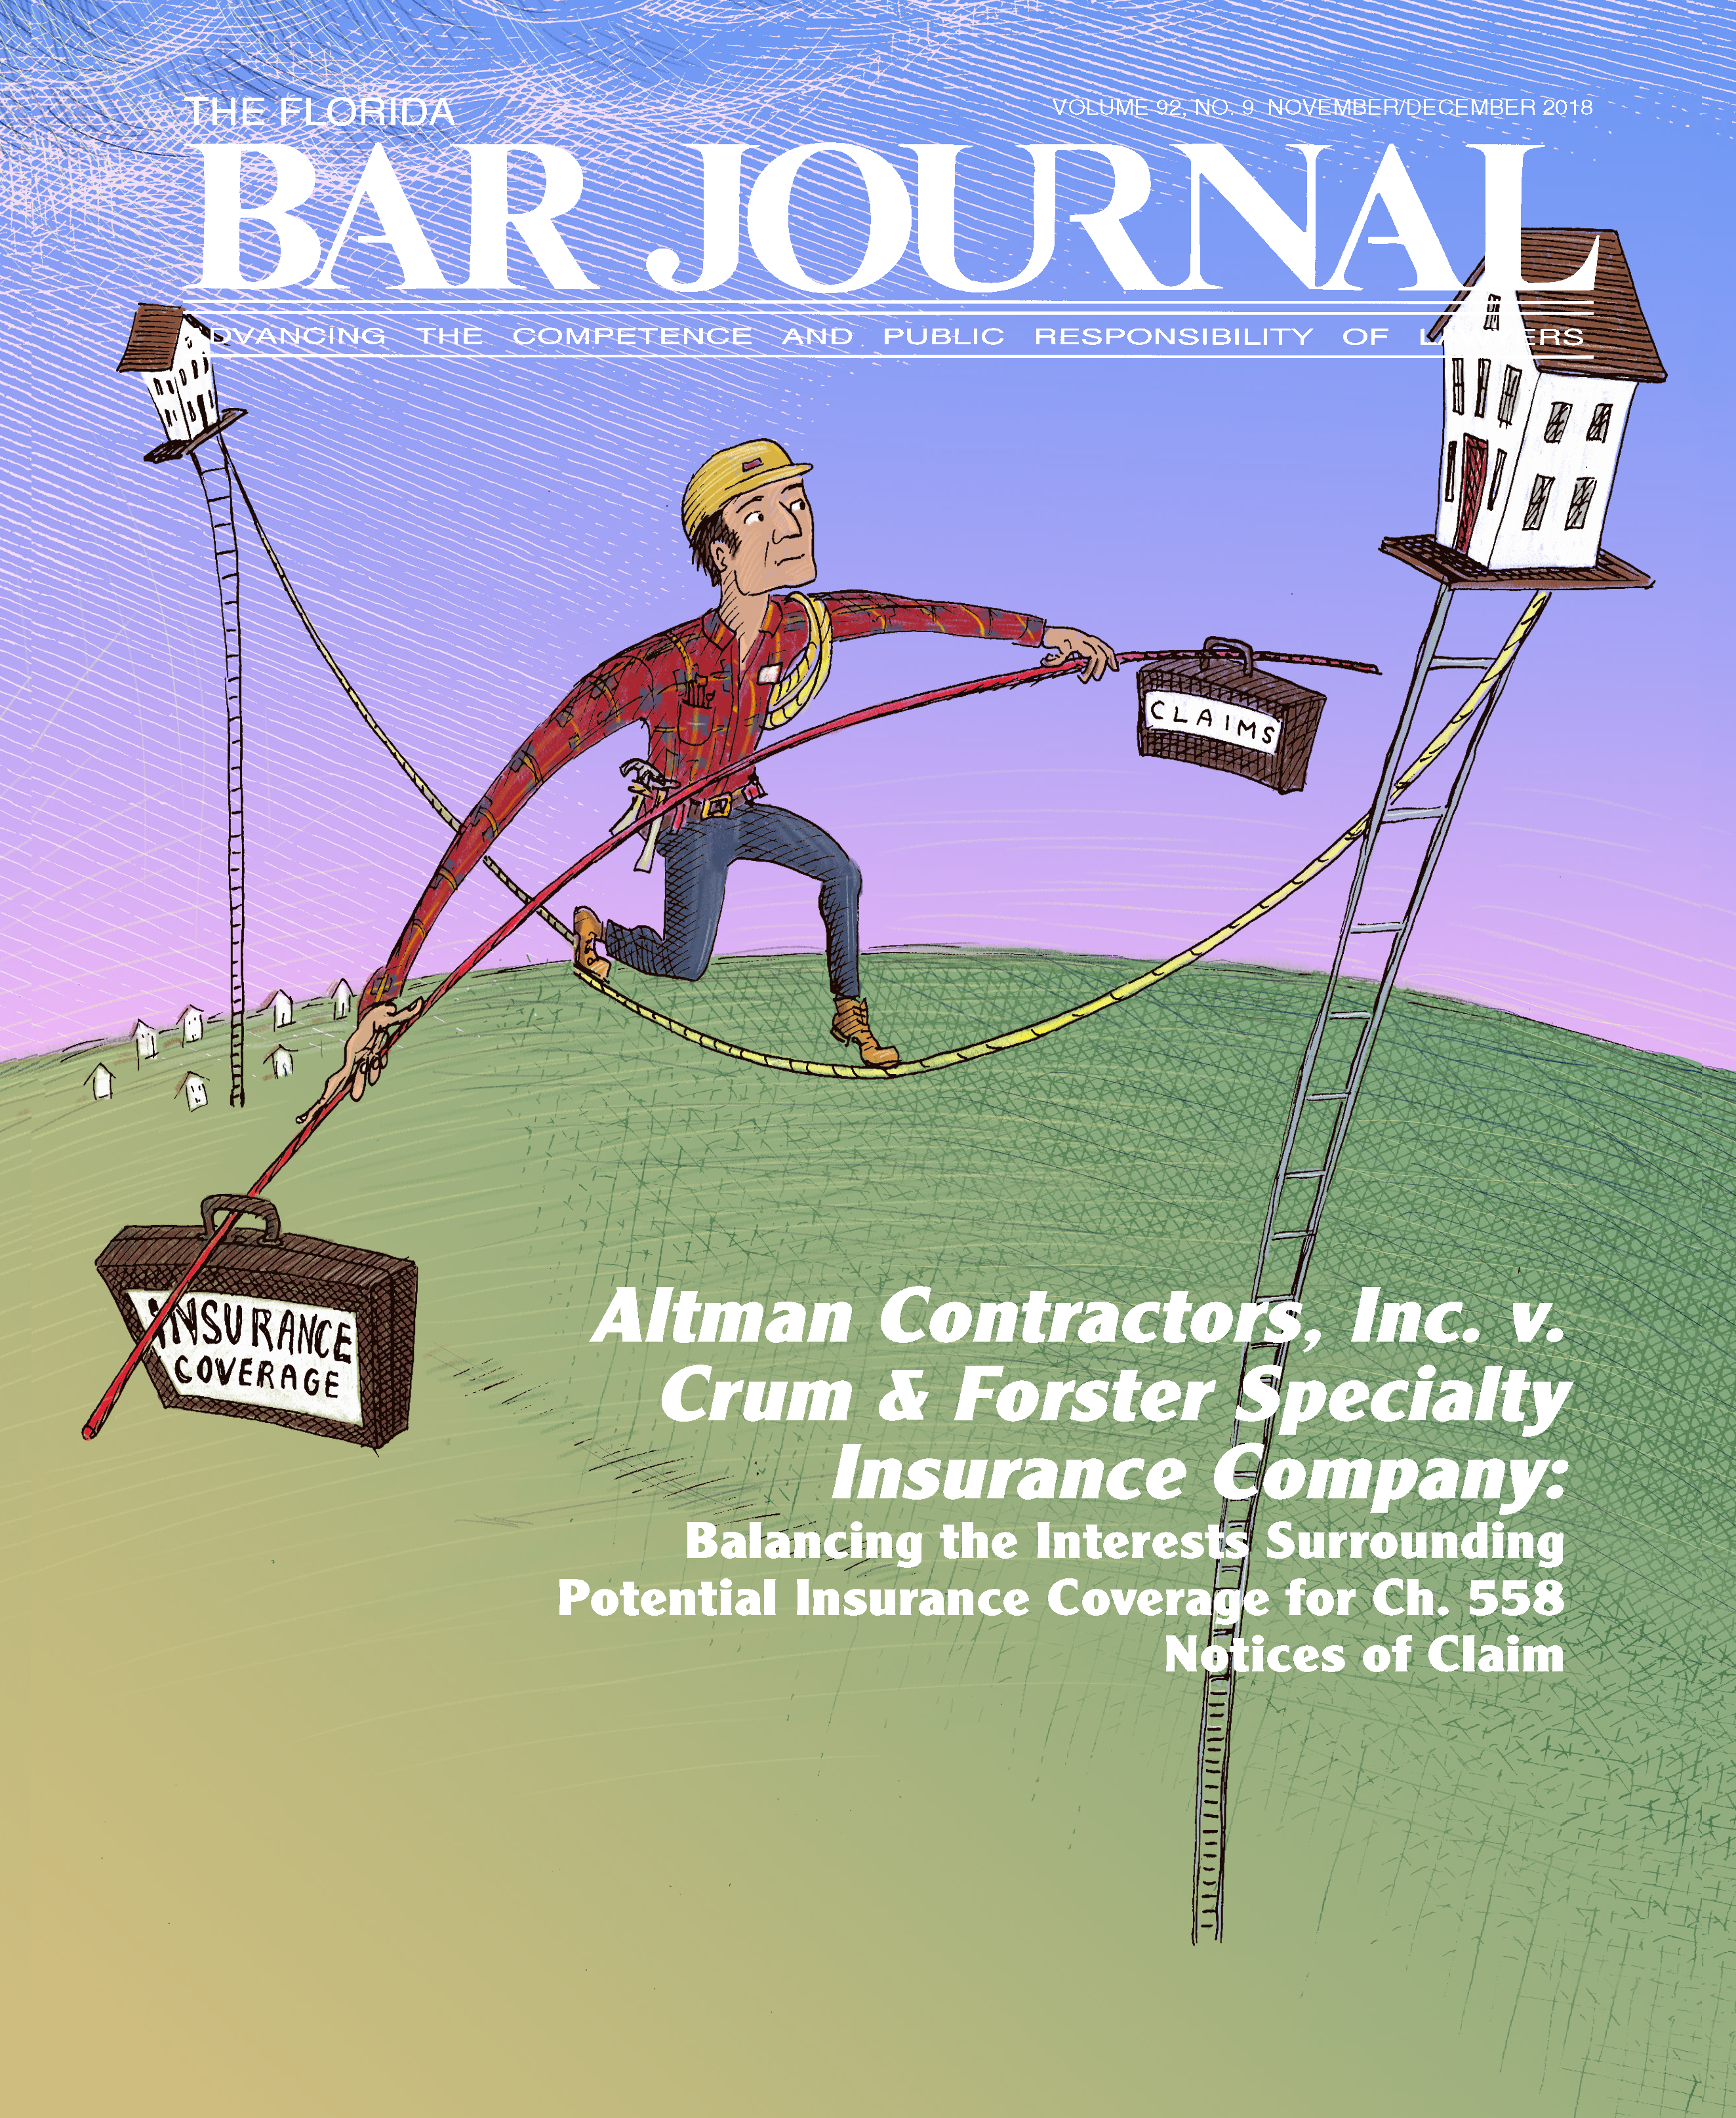 Nov. 2018 Issue of The Florida Bar Journal